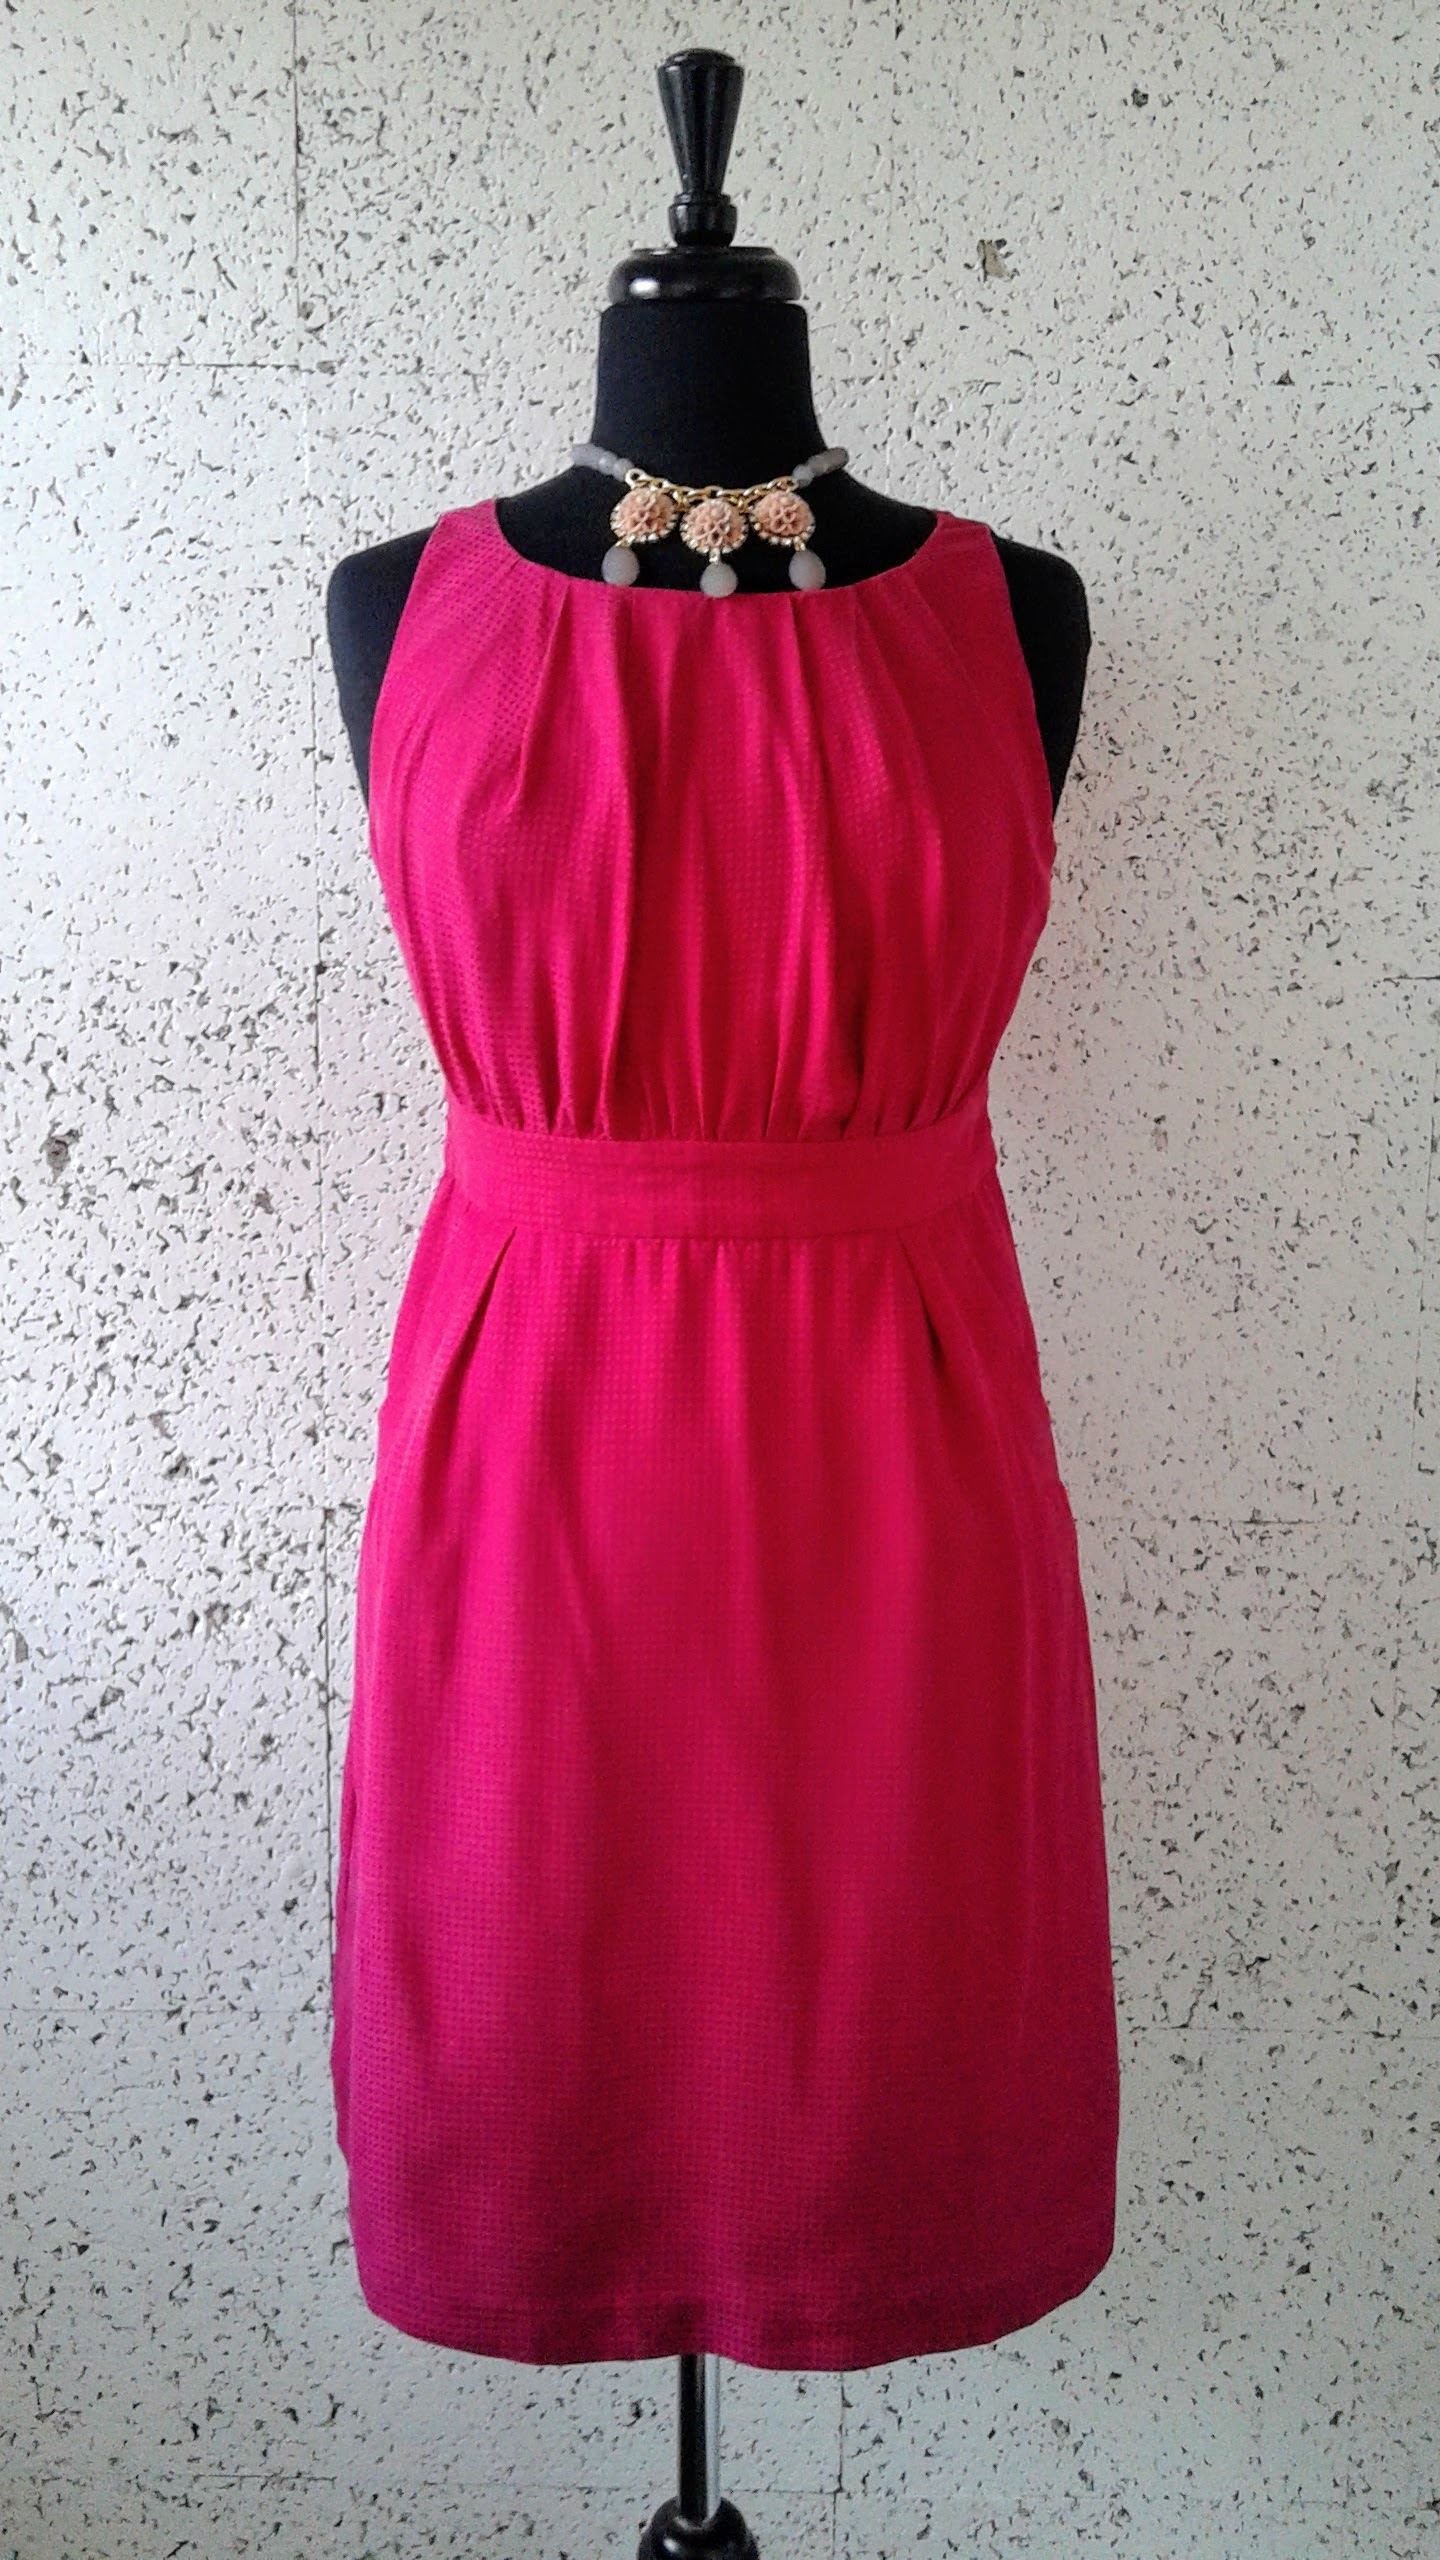 Jacob dress; Size S, $30. Necklace, $30